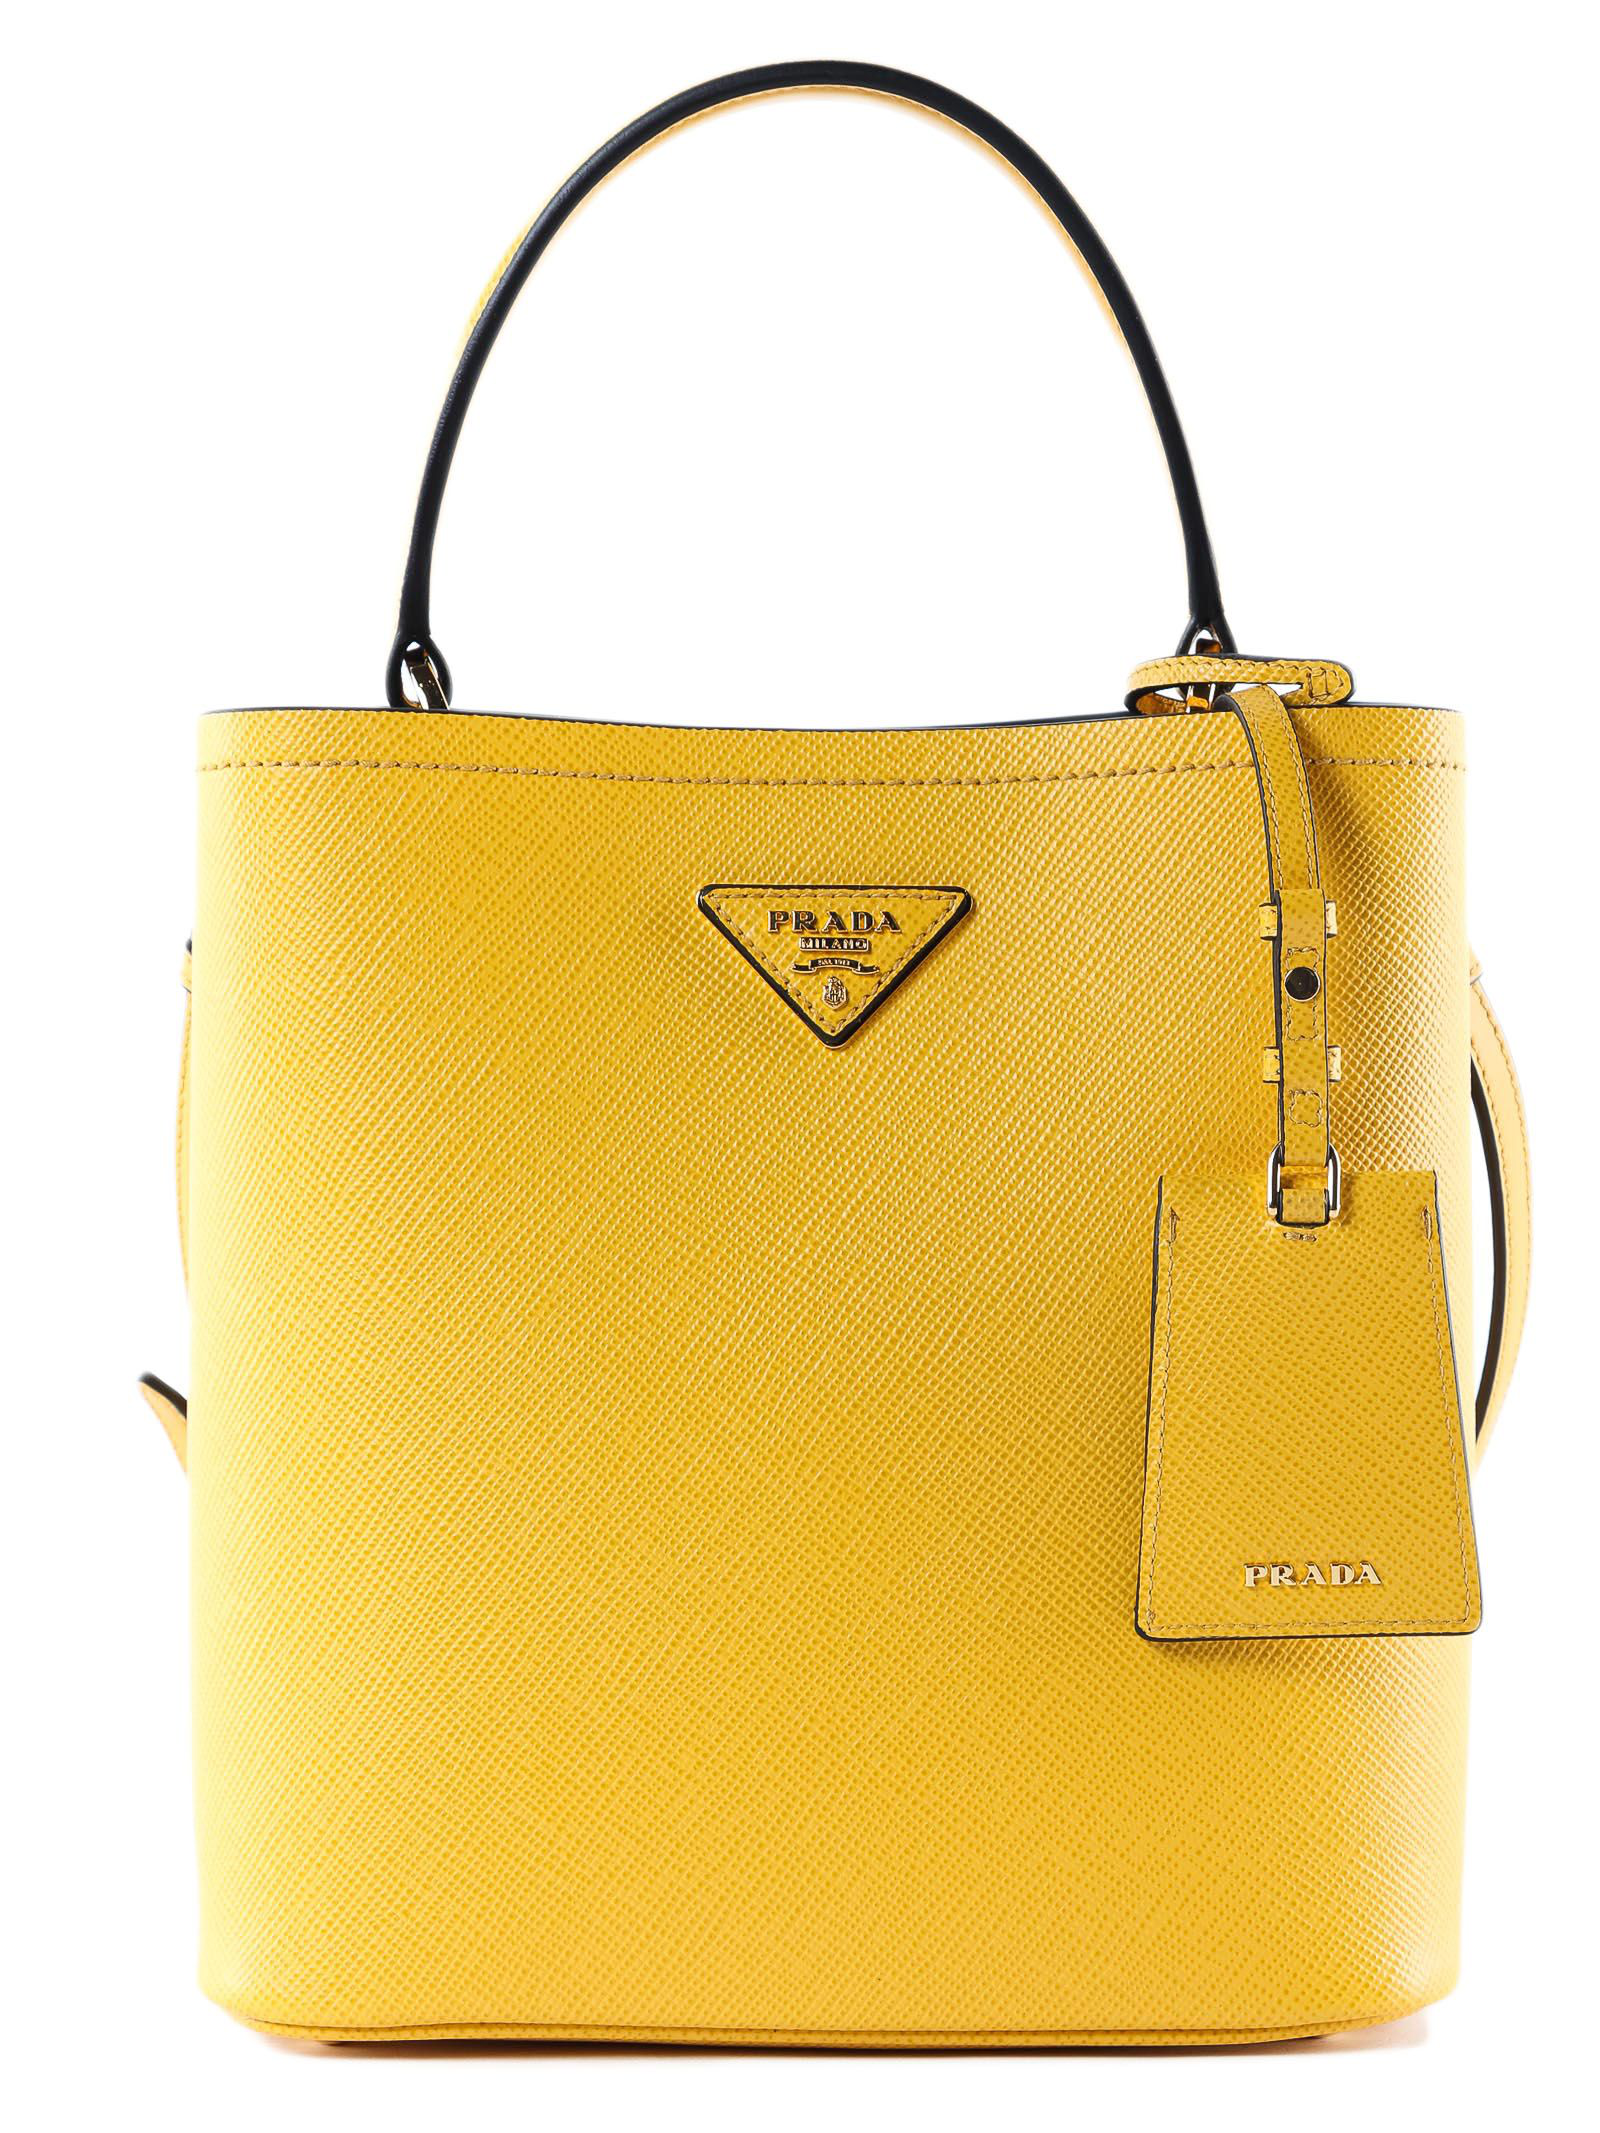 15e53359ad93 Prada Double Medium Leather Tote In Yellow